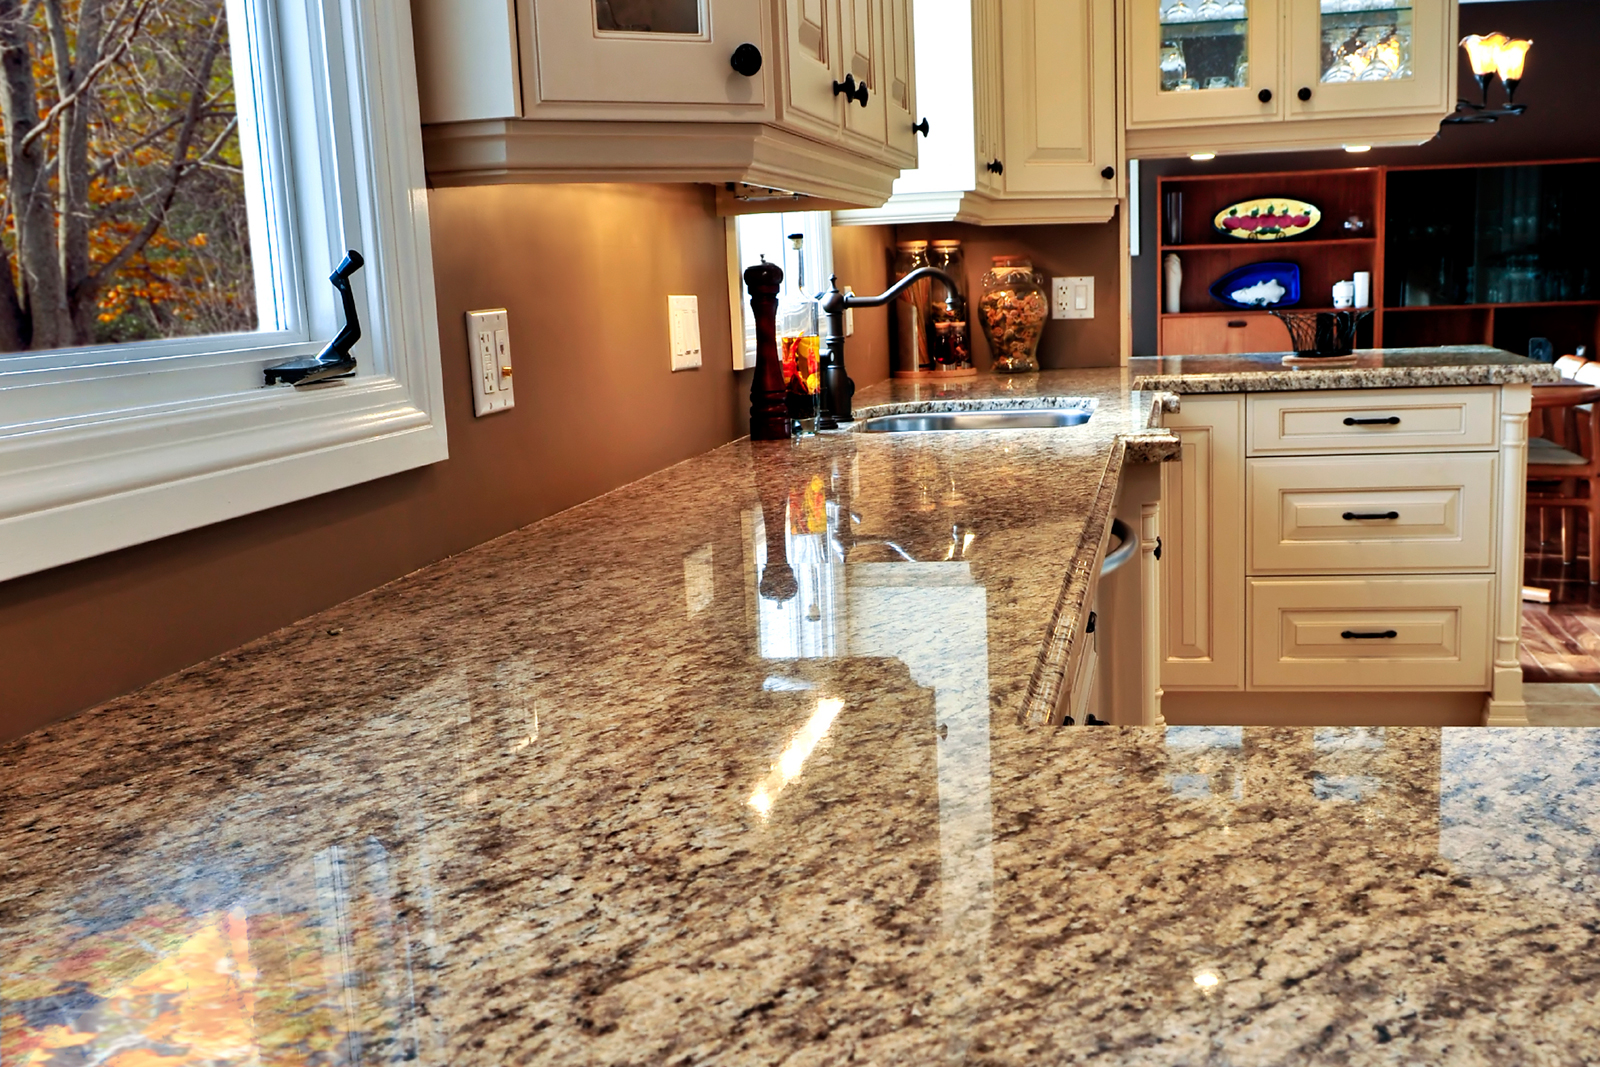 How To Repair Marble Countertops Laminate Countertops That Look Like Granite Home Decor